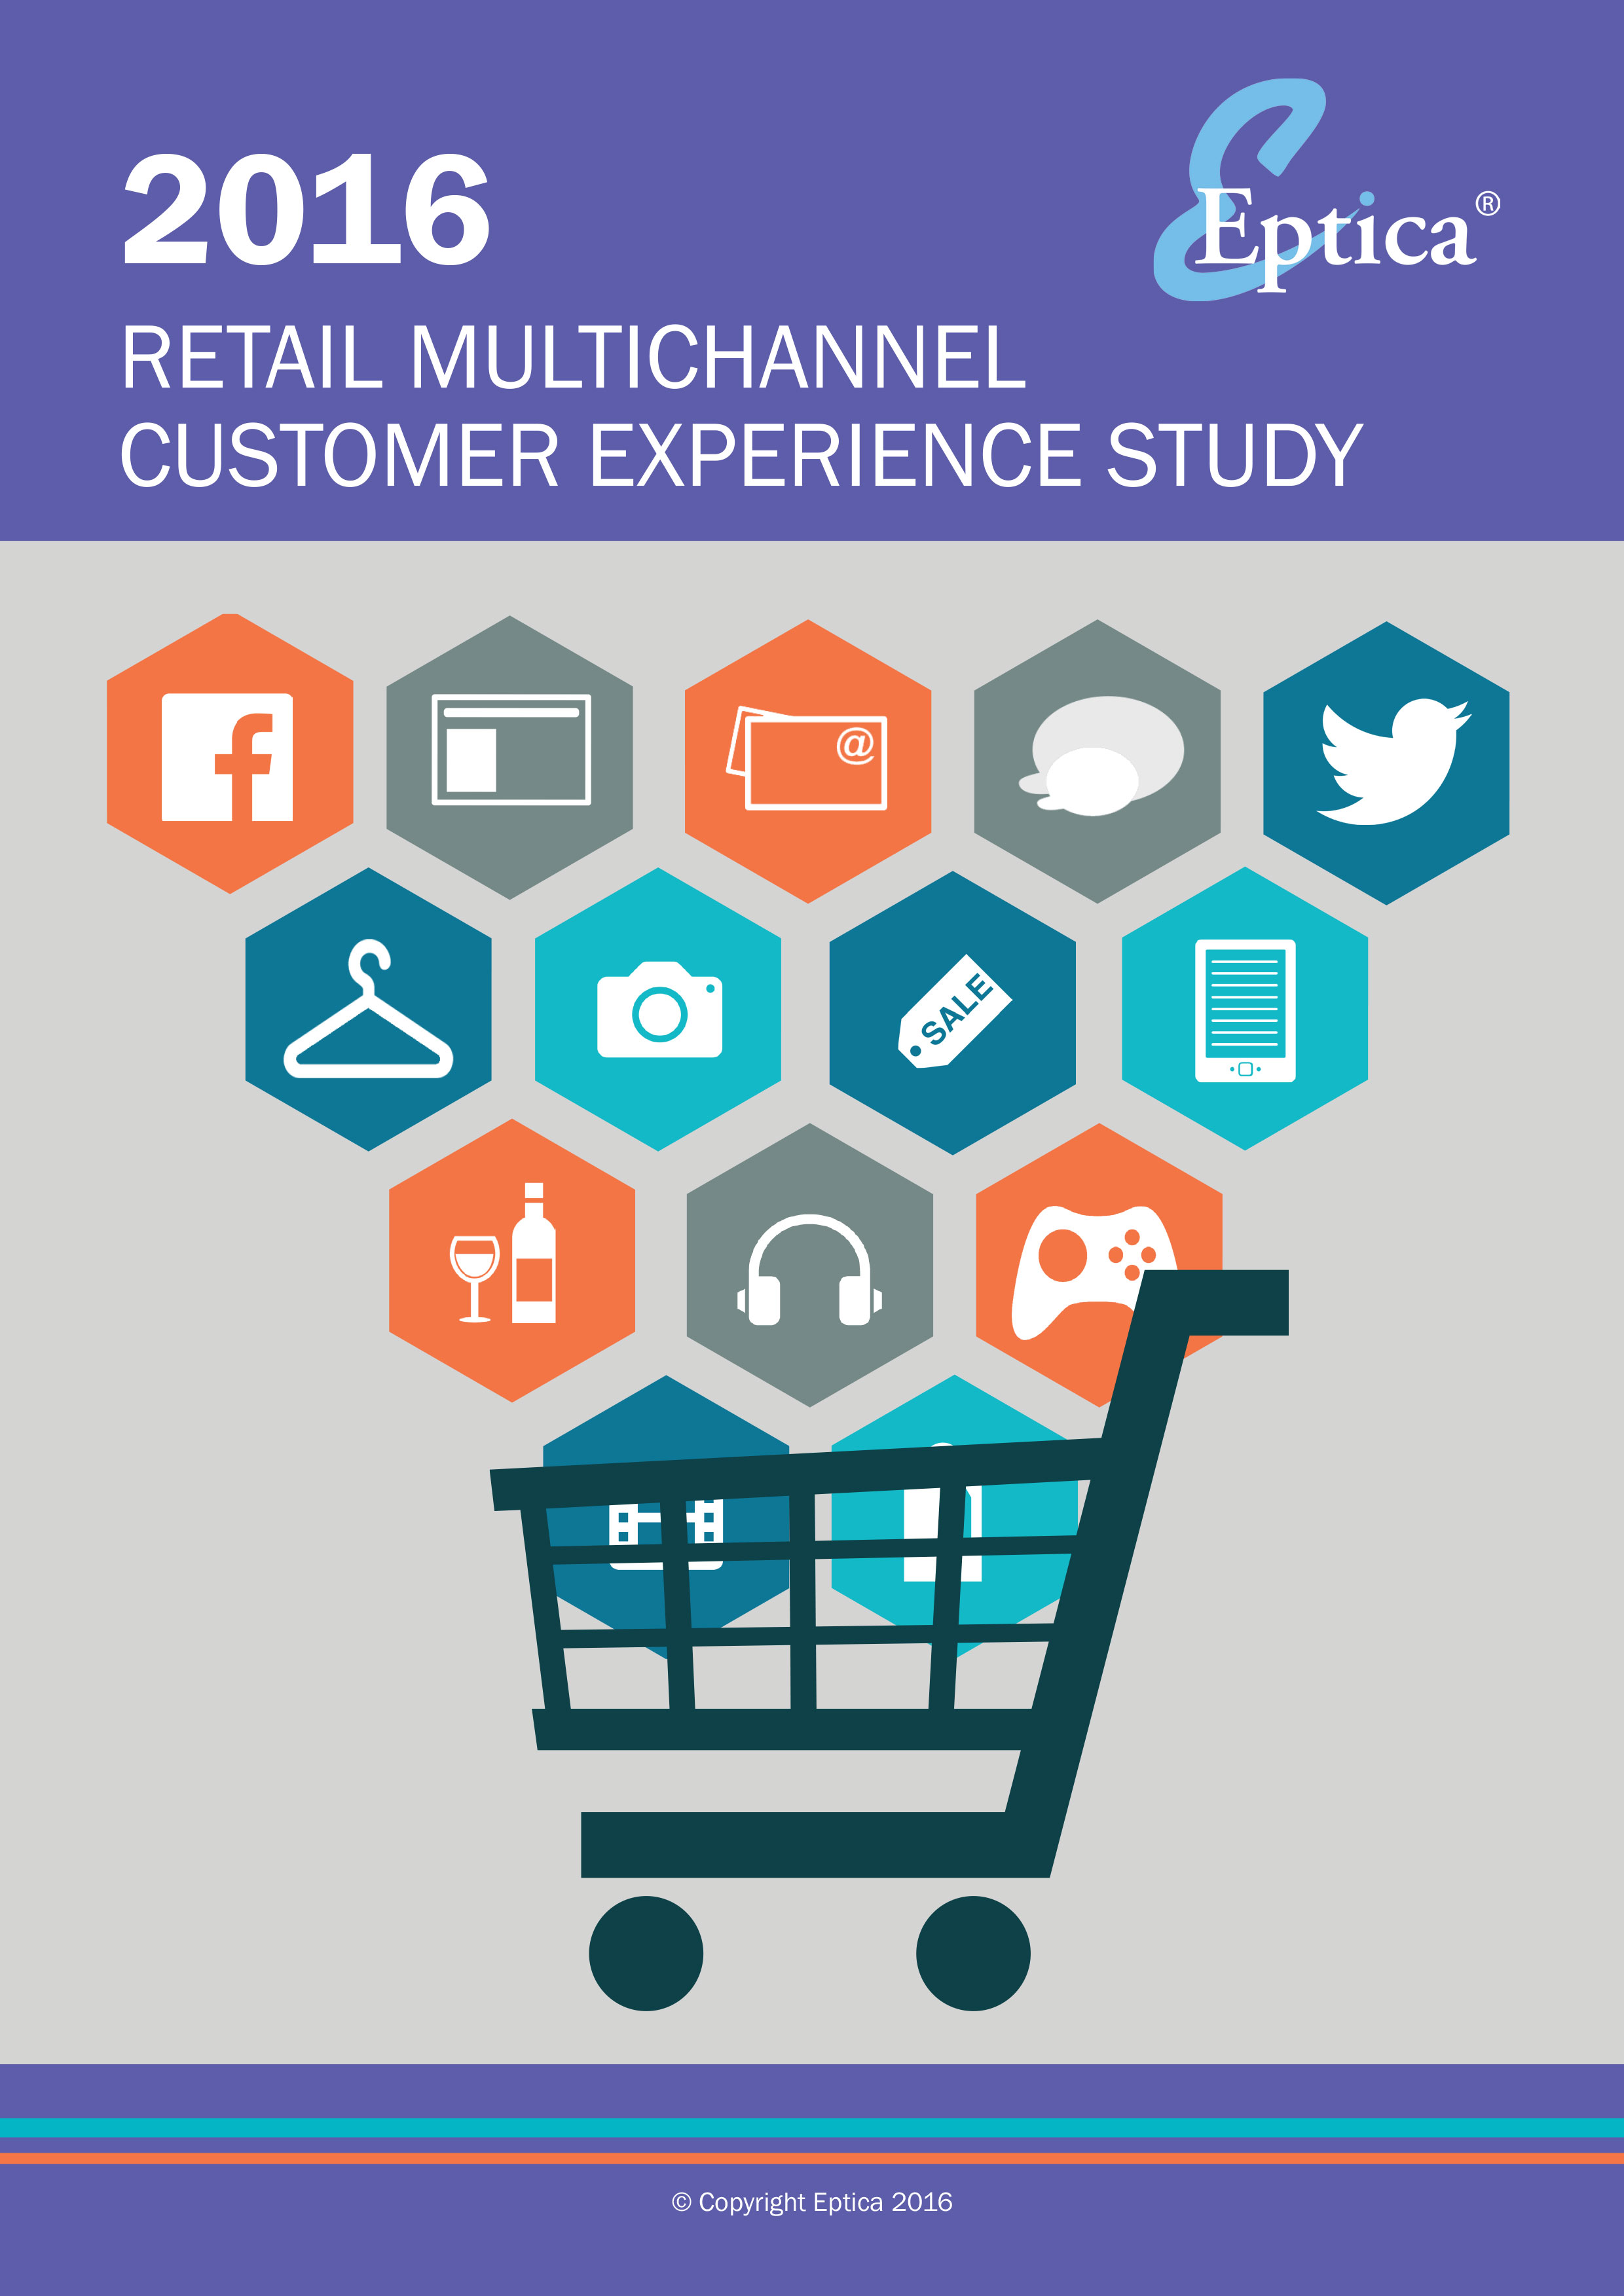 Eptica Multichannel Customer Experience Study